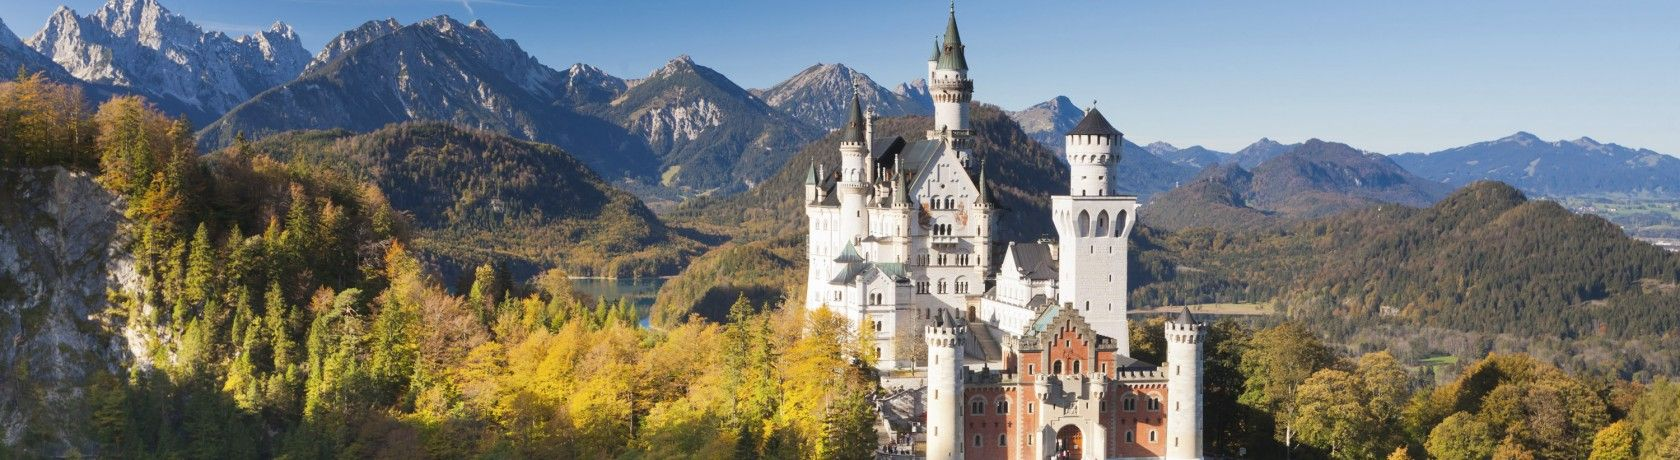 Explore Germany With Rough Guides Find Out The Best Places To Visit When Go View Itineraries And Read About Beer Cycling Castles Spas